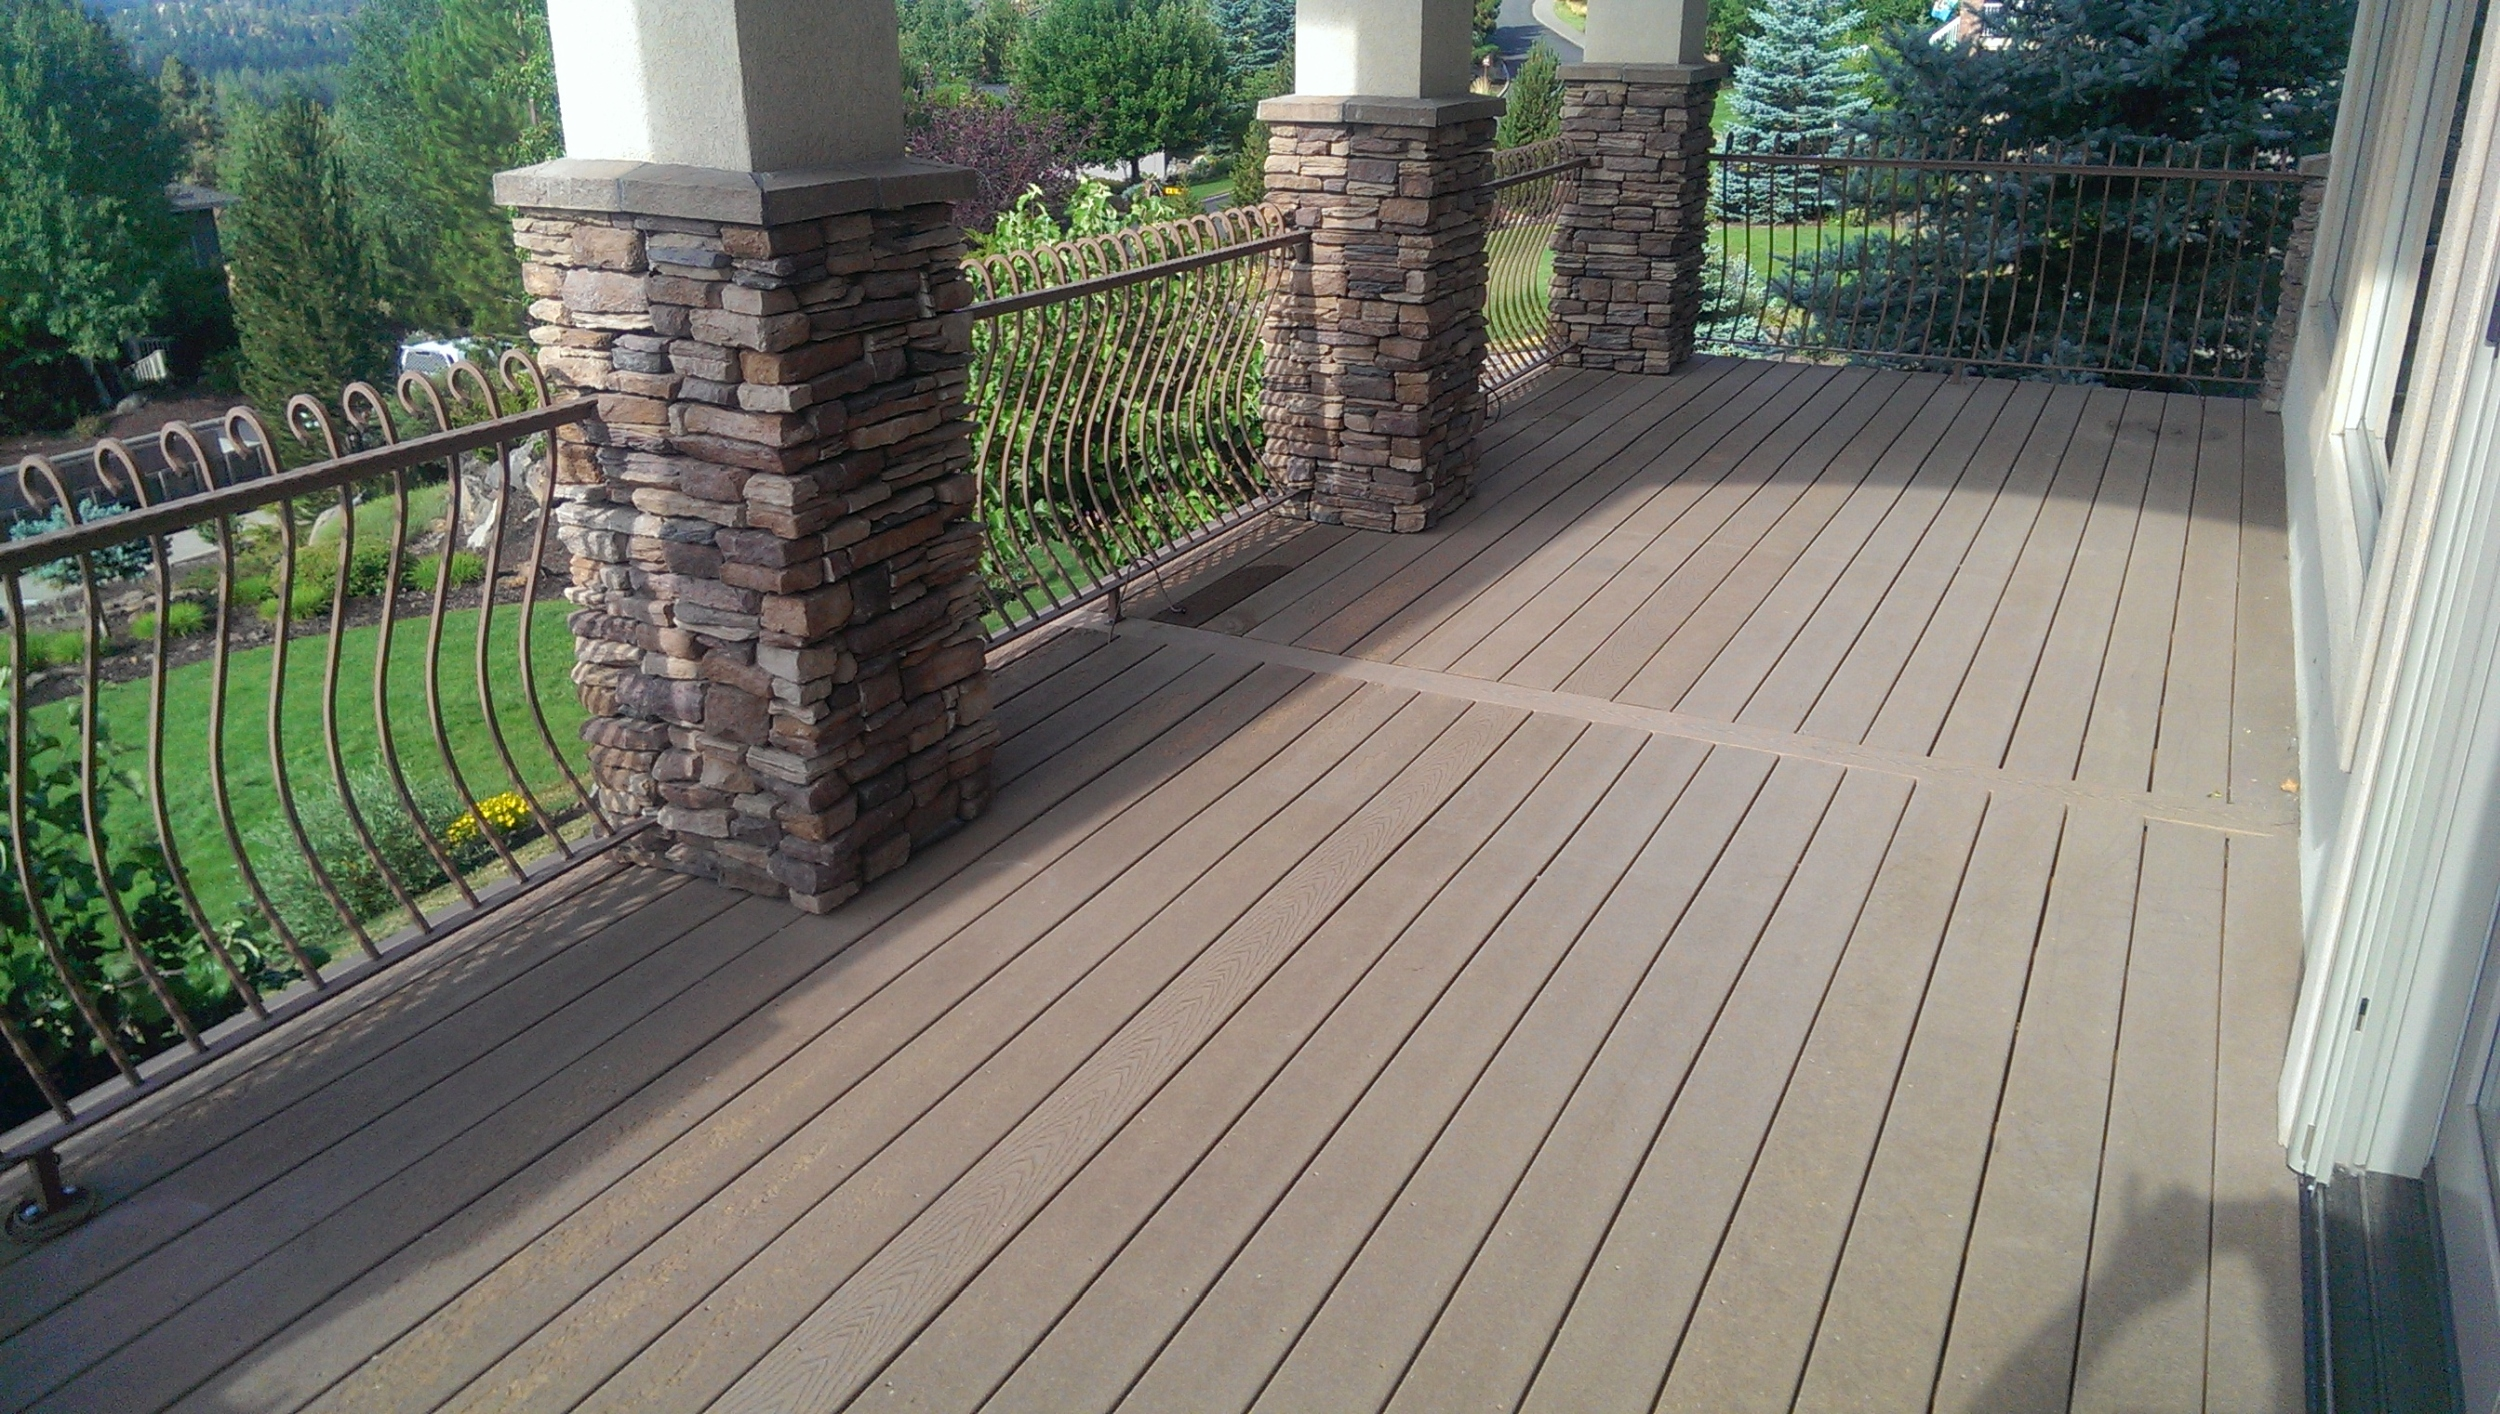 First Generation non-capped Trex decking.